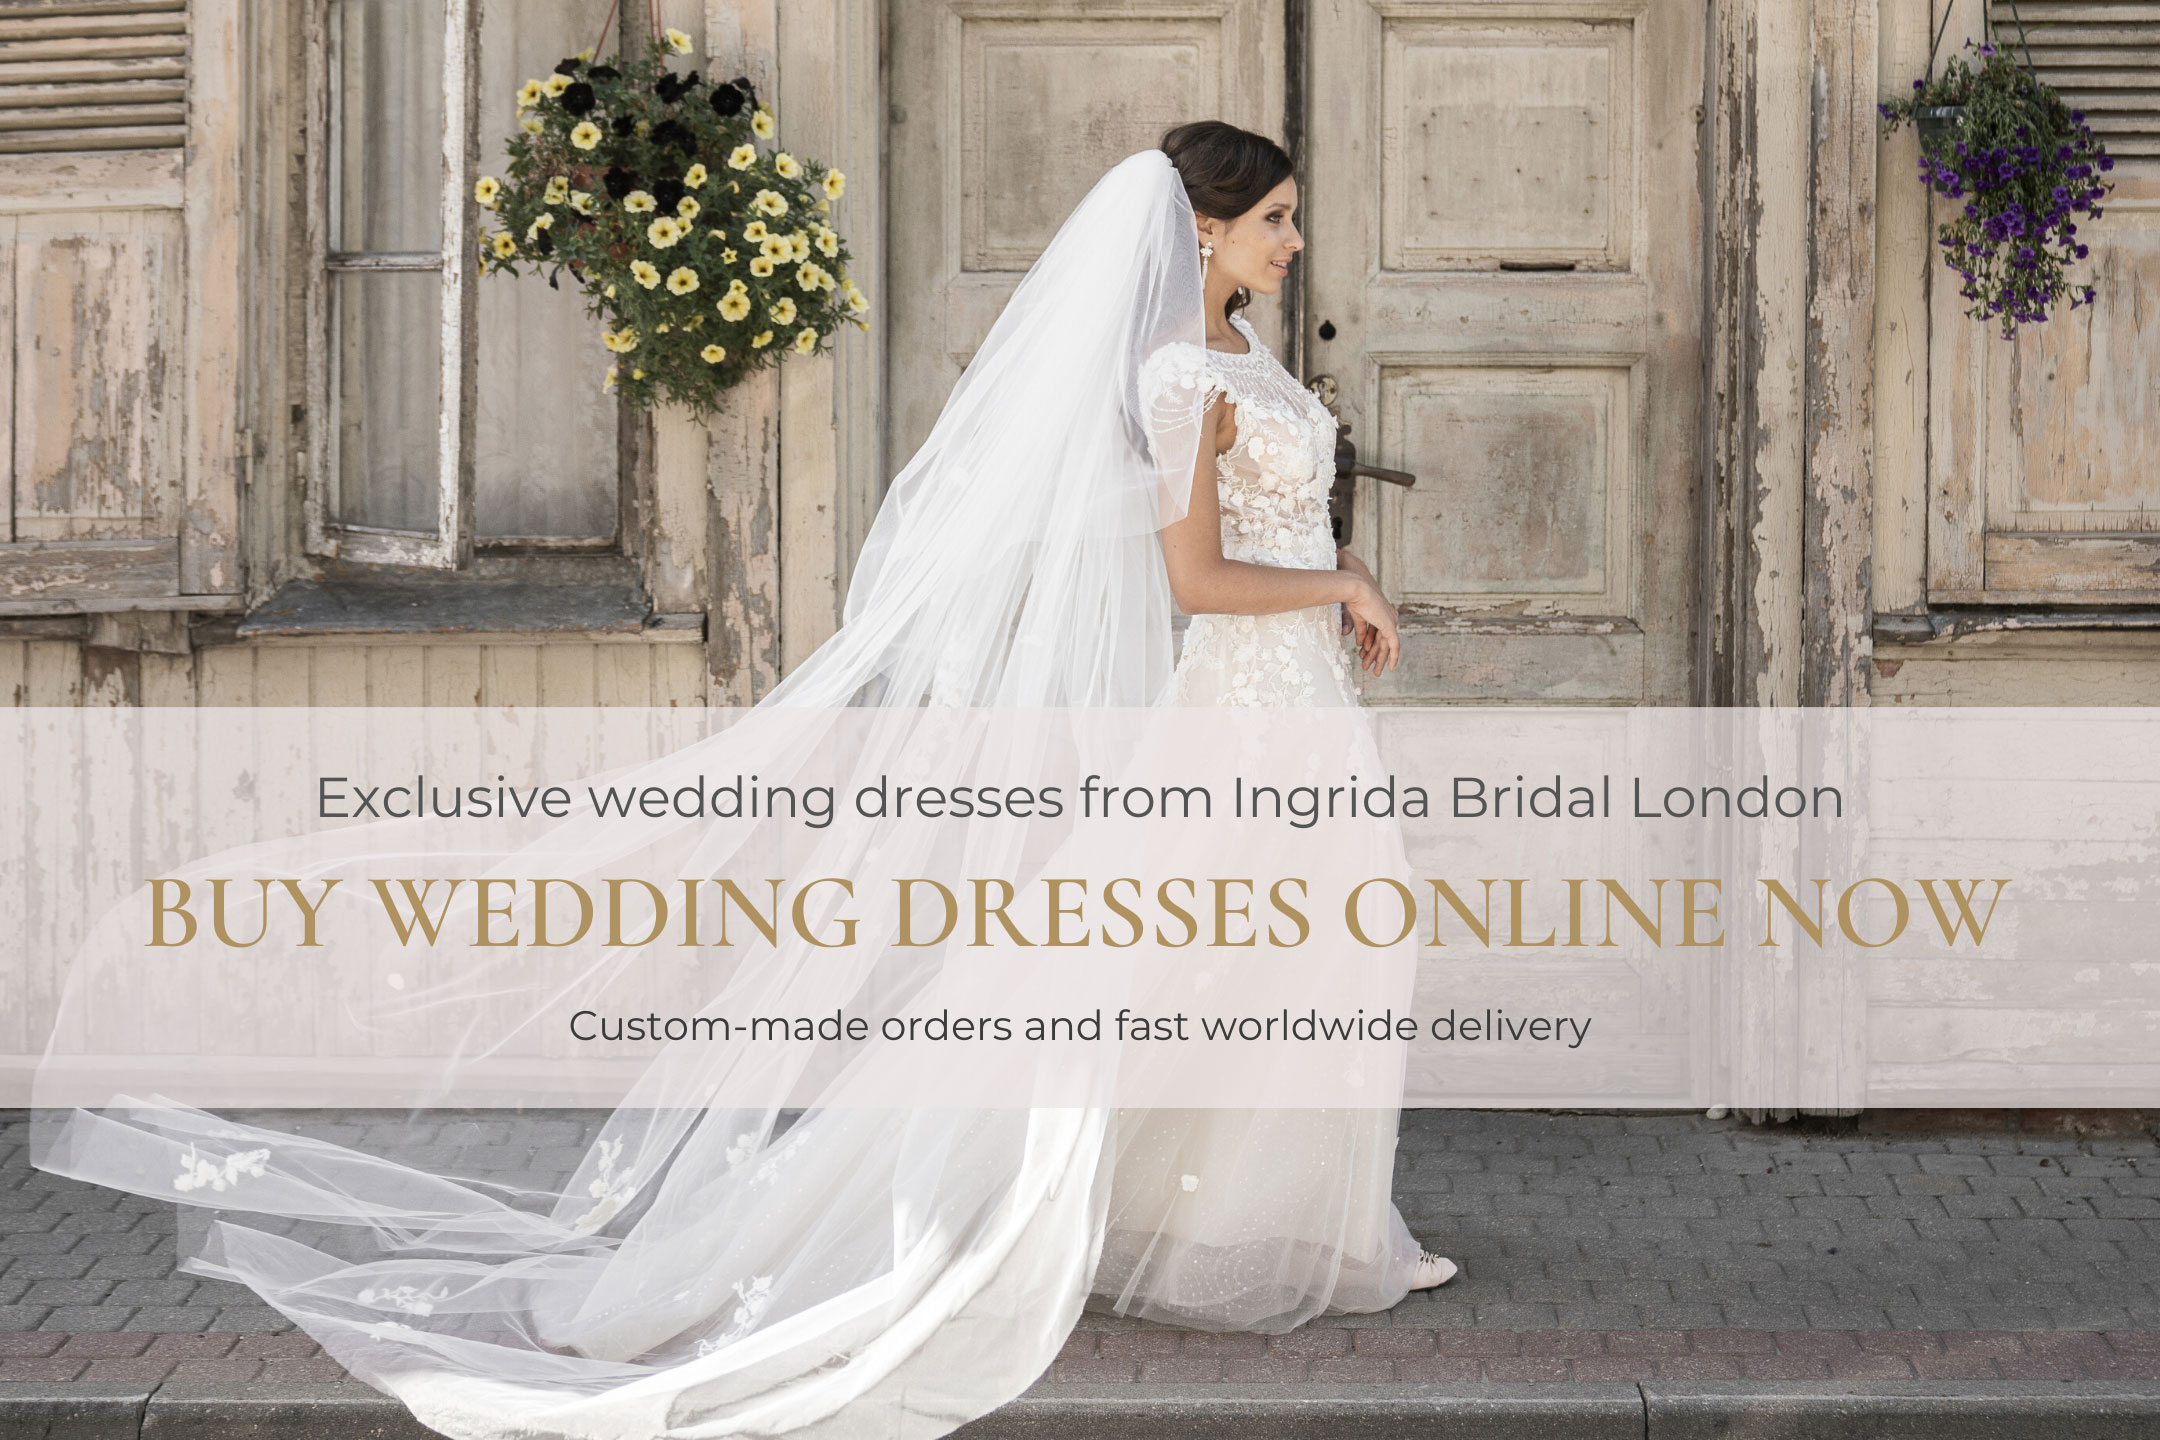 wedding dresses Ingrida Bridal London buy online